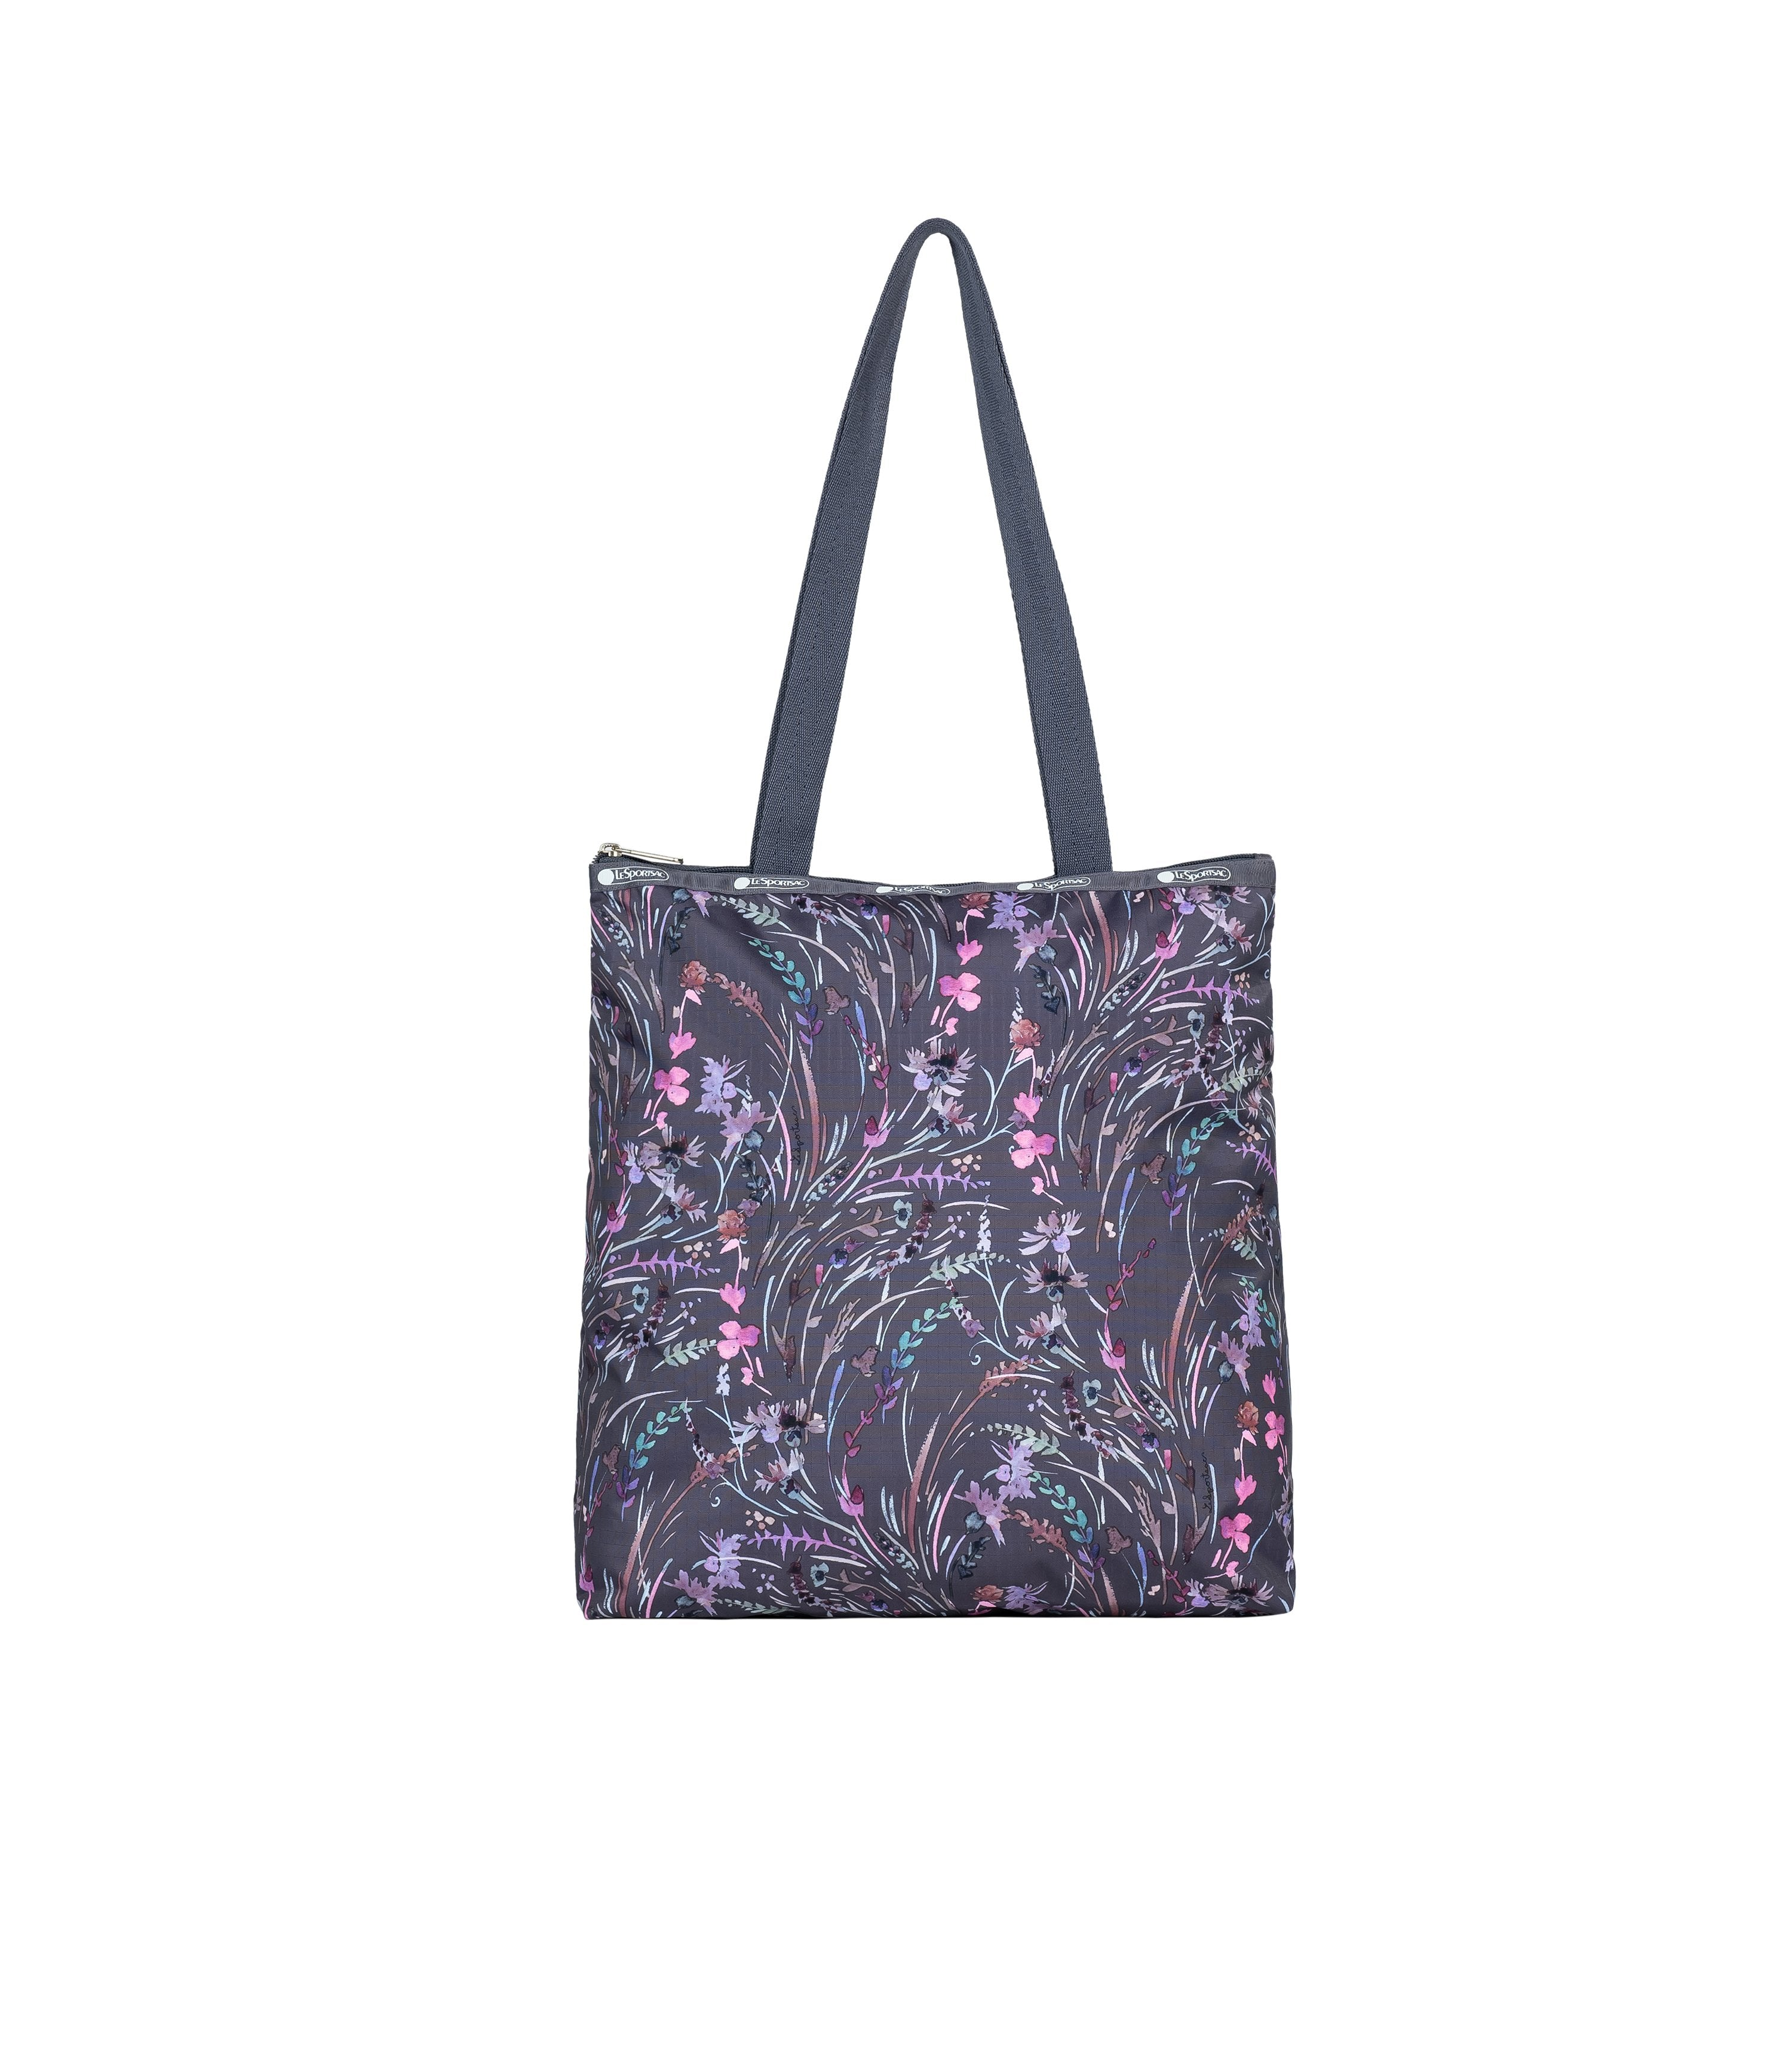 LeSportsac - Totes - Easy Magazine Tote - Windswept Floral Shadow print